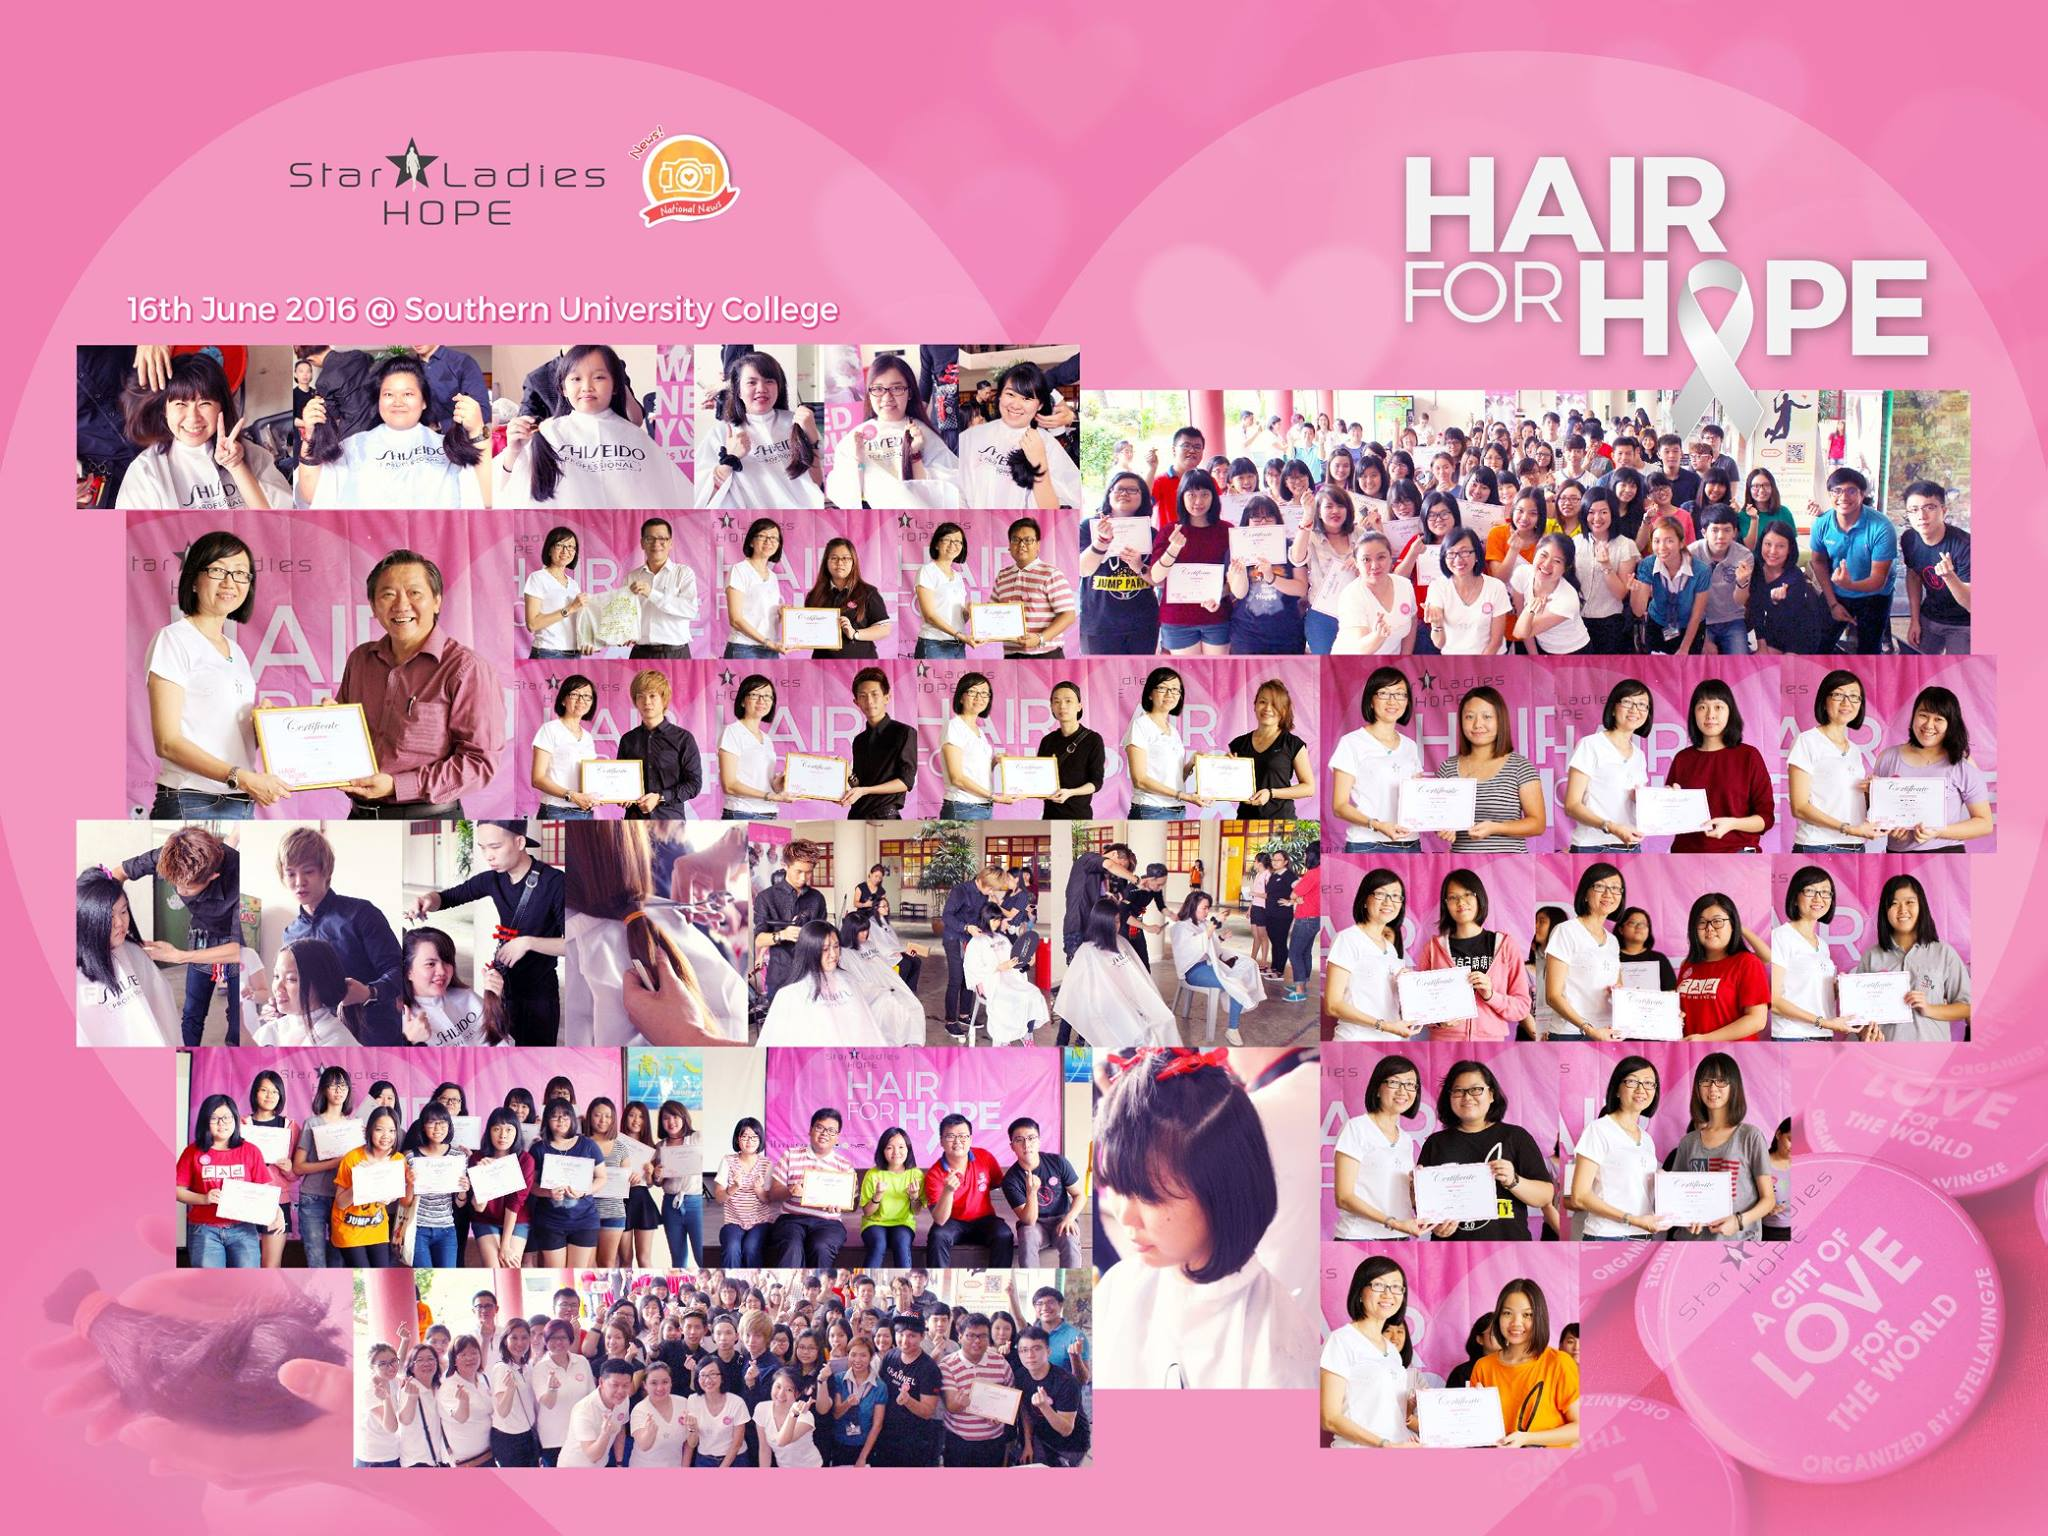 HAIR FOR HOPE . SOUTHERN UNIVERSITY COLLEGE |    7 days ago, StarLadies Hope came to Southern University College. Seeing all these little ladies to be donated their long kept hair to the needy, we feel so proud of your bravery, and touched with your kind heart. Special thanks for the Headmaster of Southern University College for collaborating with us in bring this campaign into school, giving a chance for the youngster to further aware of the importance of social care. Big thank you to all hairstylist who spare your precious time for this hair donation campaign, without you, this campaign will not be a success! We are blessed to all the love and care shared in Hair for Hope, till then, may everyone be blessed with health and love.   Special Thanks to 特别感谢: Prof. Thock Kiah Wah Dr Tan Kim Hooi Paul Lee (NewzSalon) Ric Lim (NewzSalon) Danny Chua (NewzSalon) Love Life Society I-Kuan Tao Society   #starladieshope   #southernuniversitycollege  #hairforhope   #newzsalon